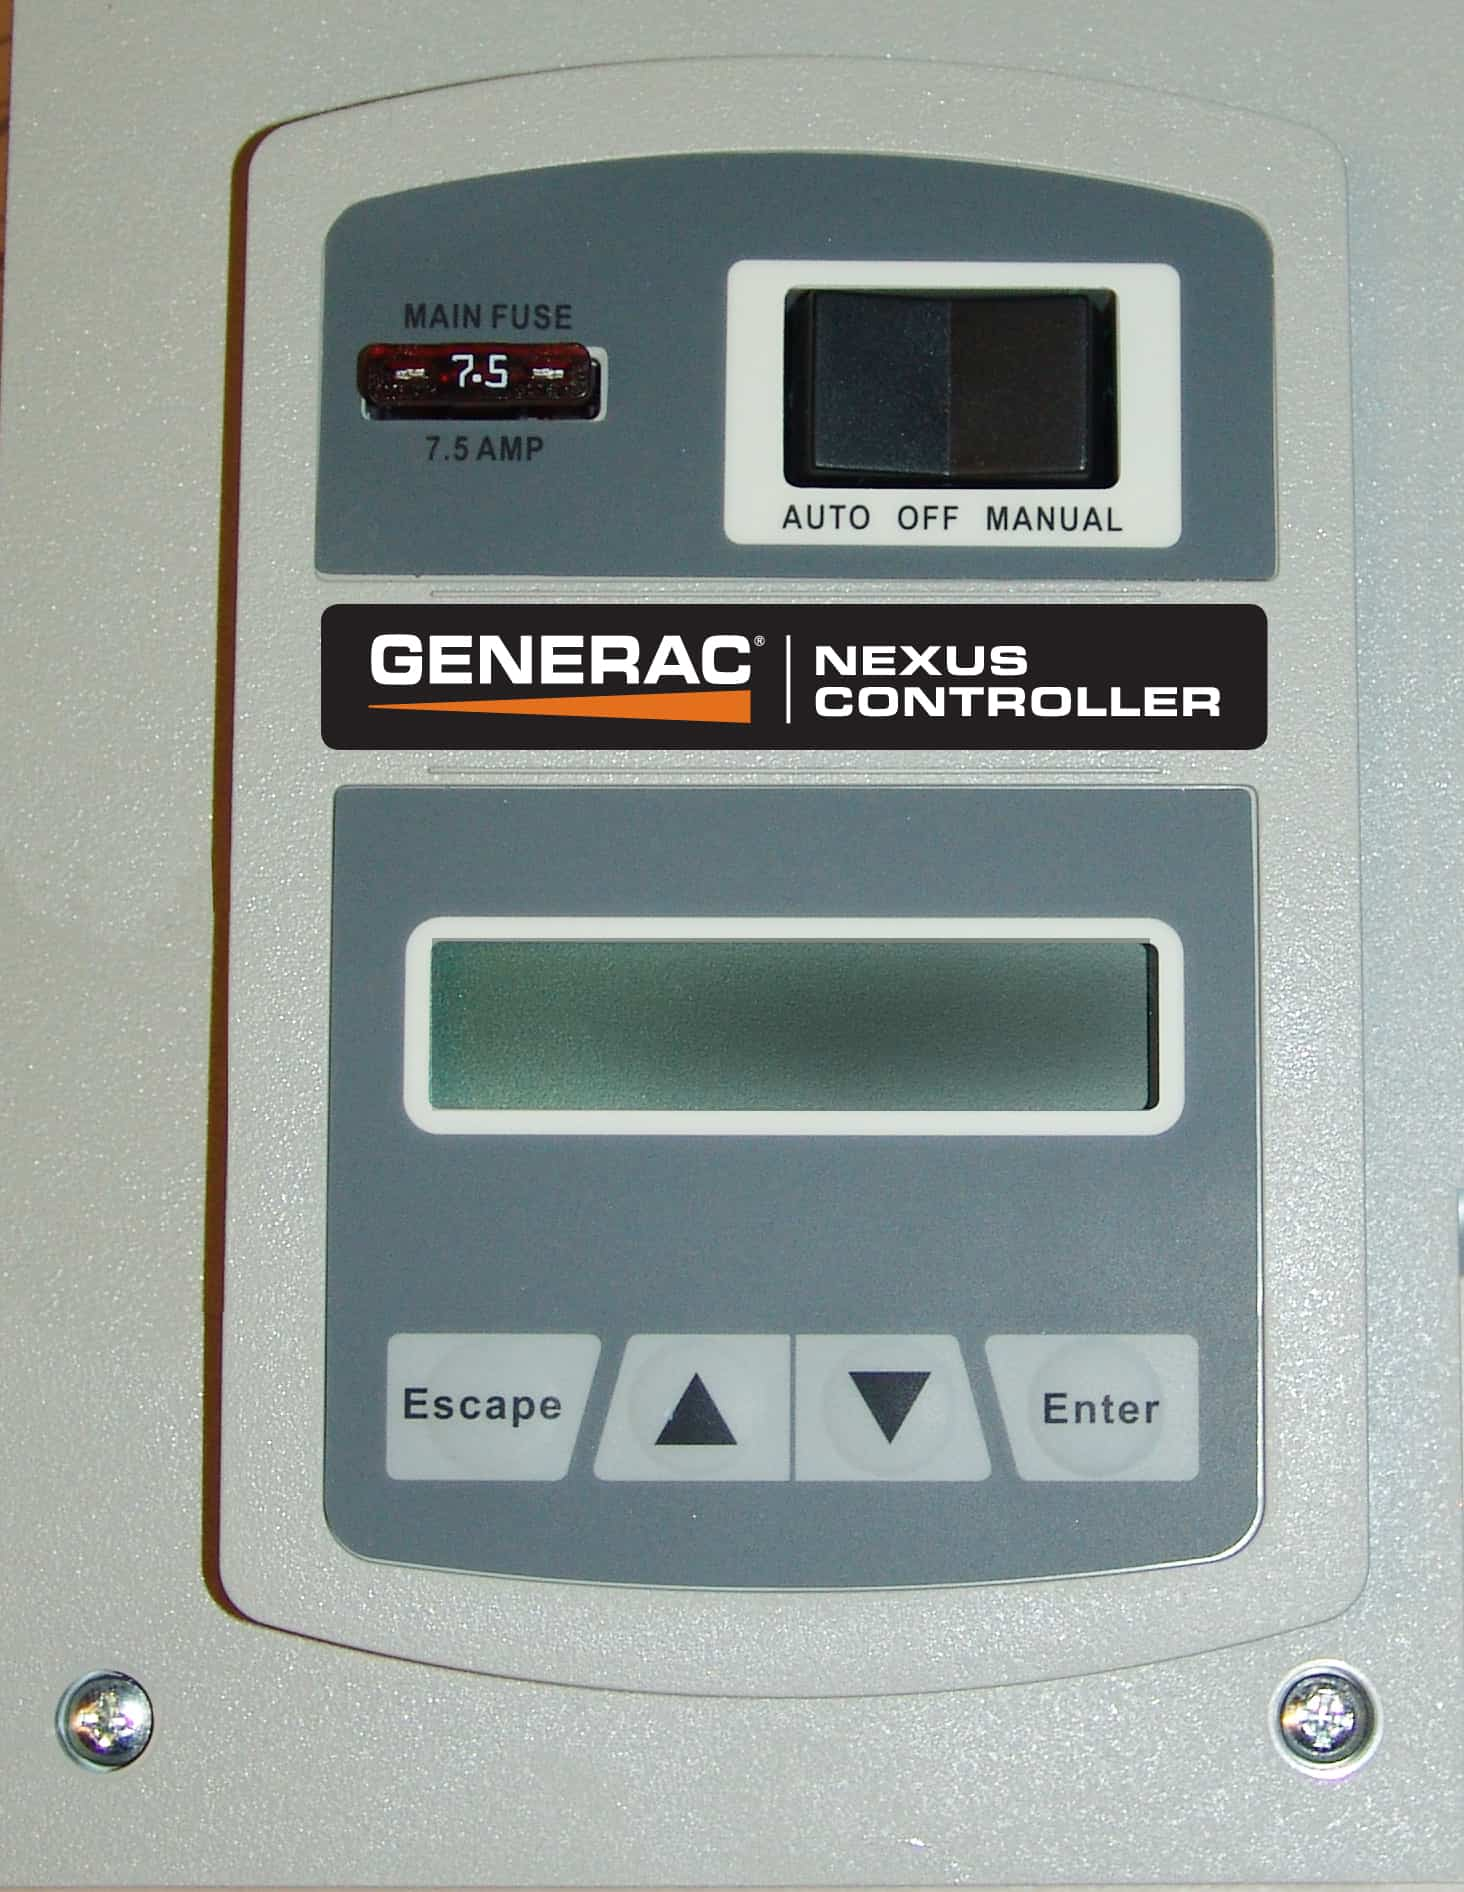 the generac nexus controller rh norwall com Generac Transfer Switch Generac Nexus Controller Manual